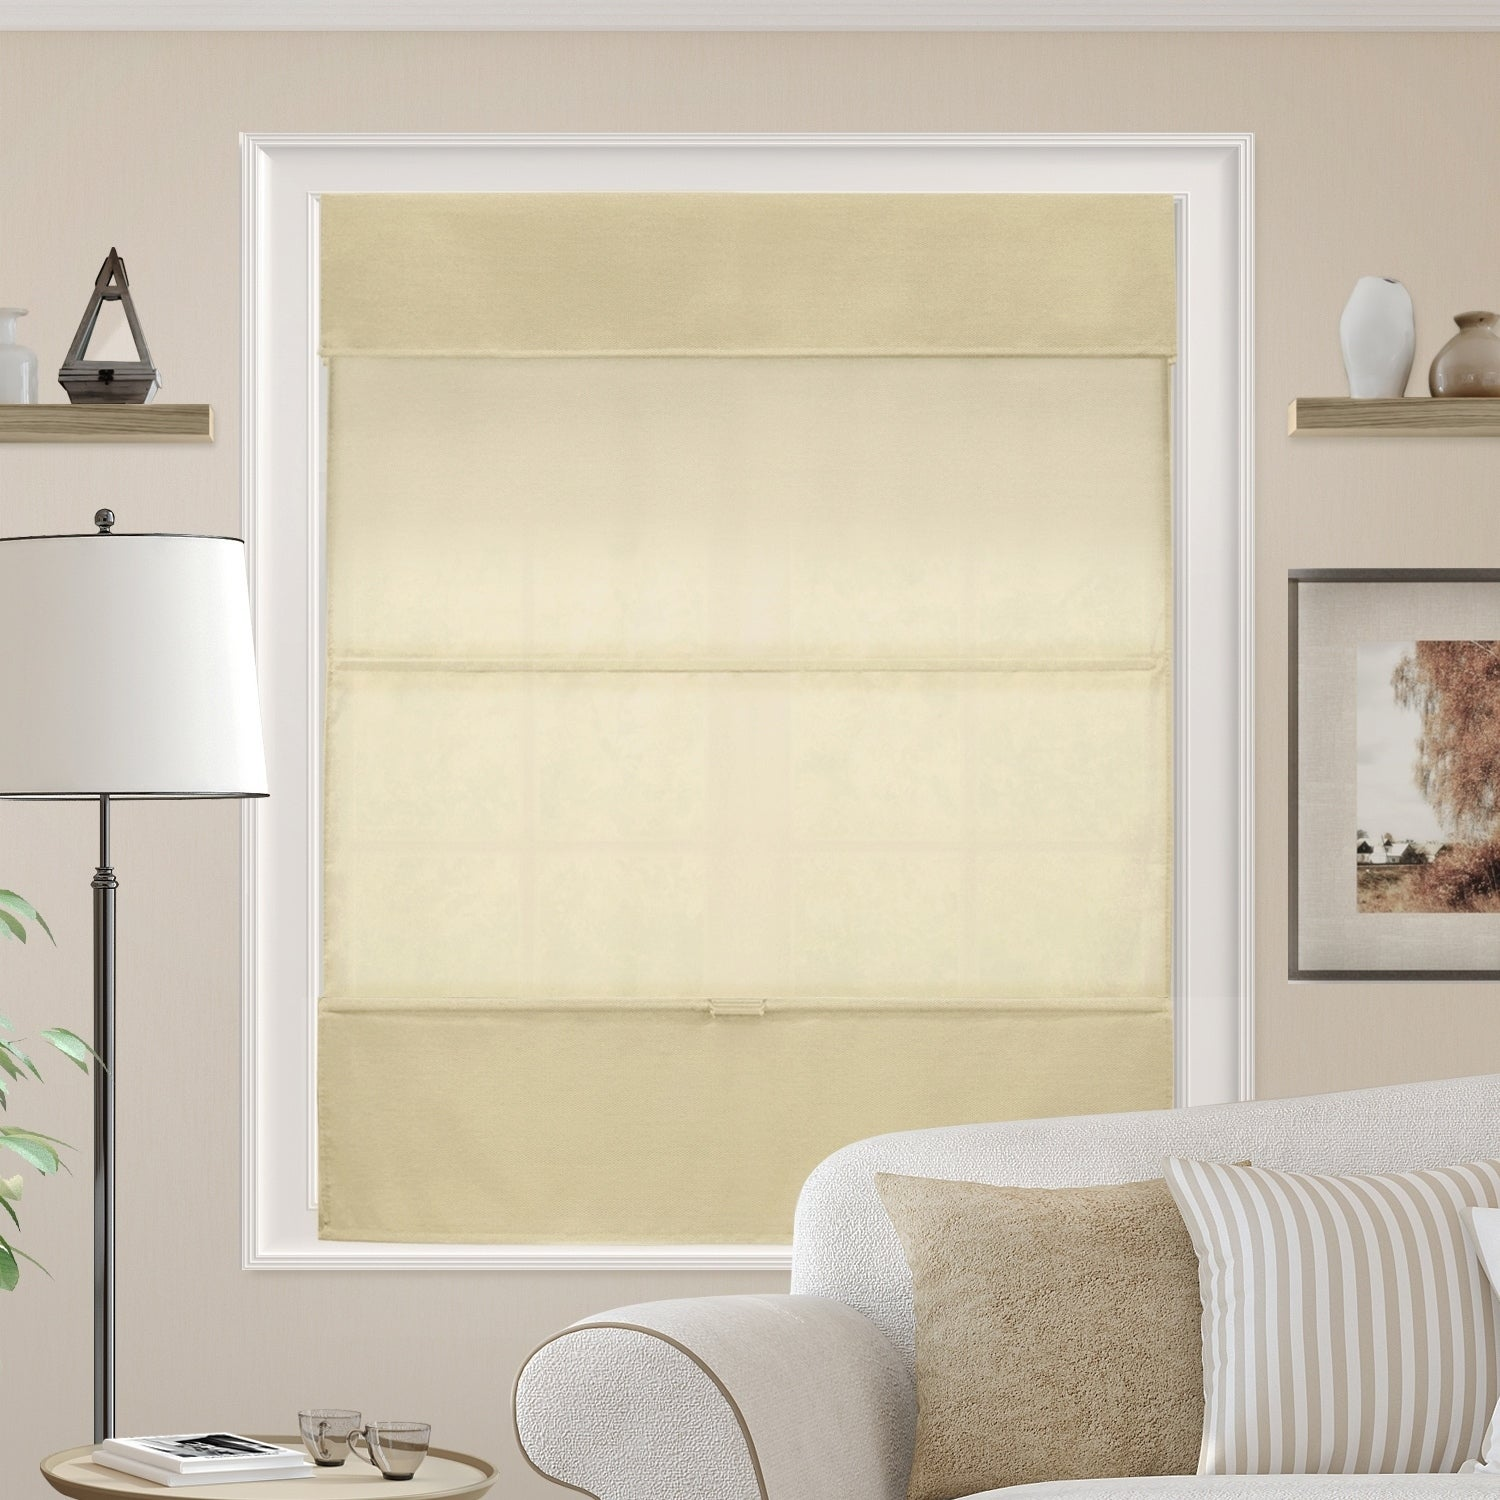 Chicology Cordless Magnetic Roman Shades Privacy Fabric Window Blind Daily Canvas Light Filtering Overstock 27778697 Daily Canvas Light Filtering 27 W X 64 H